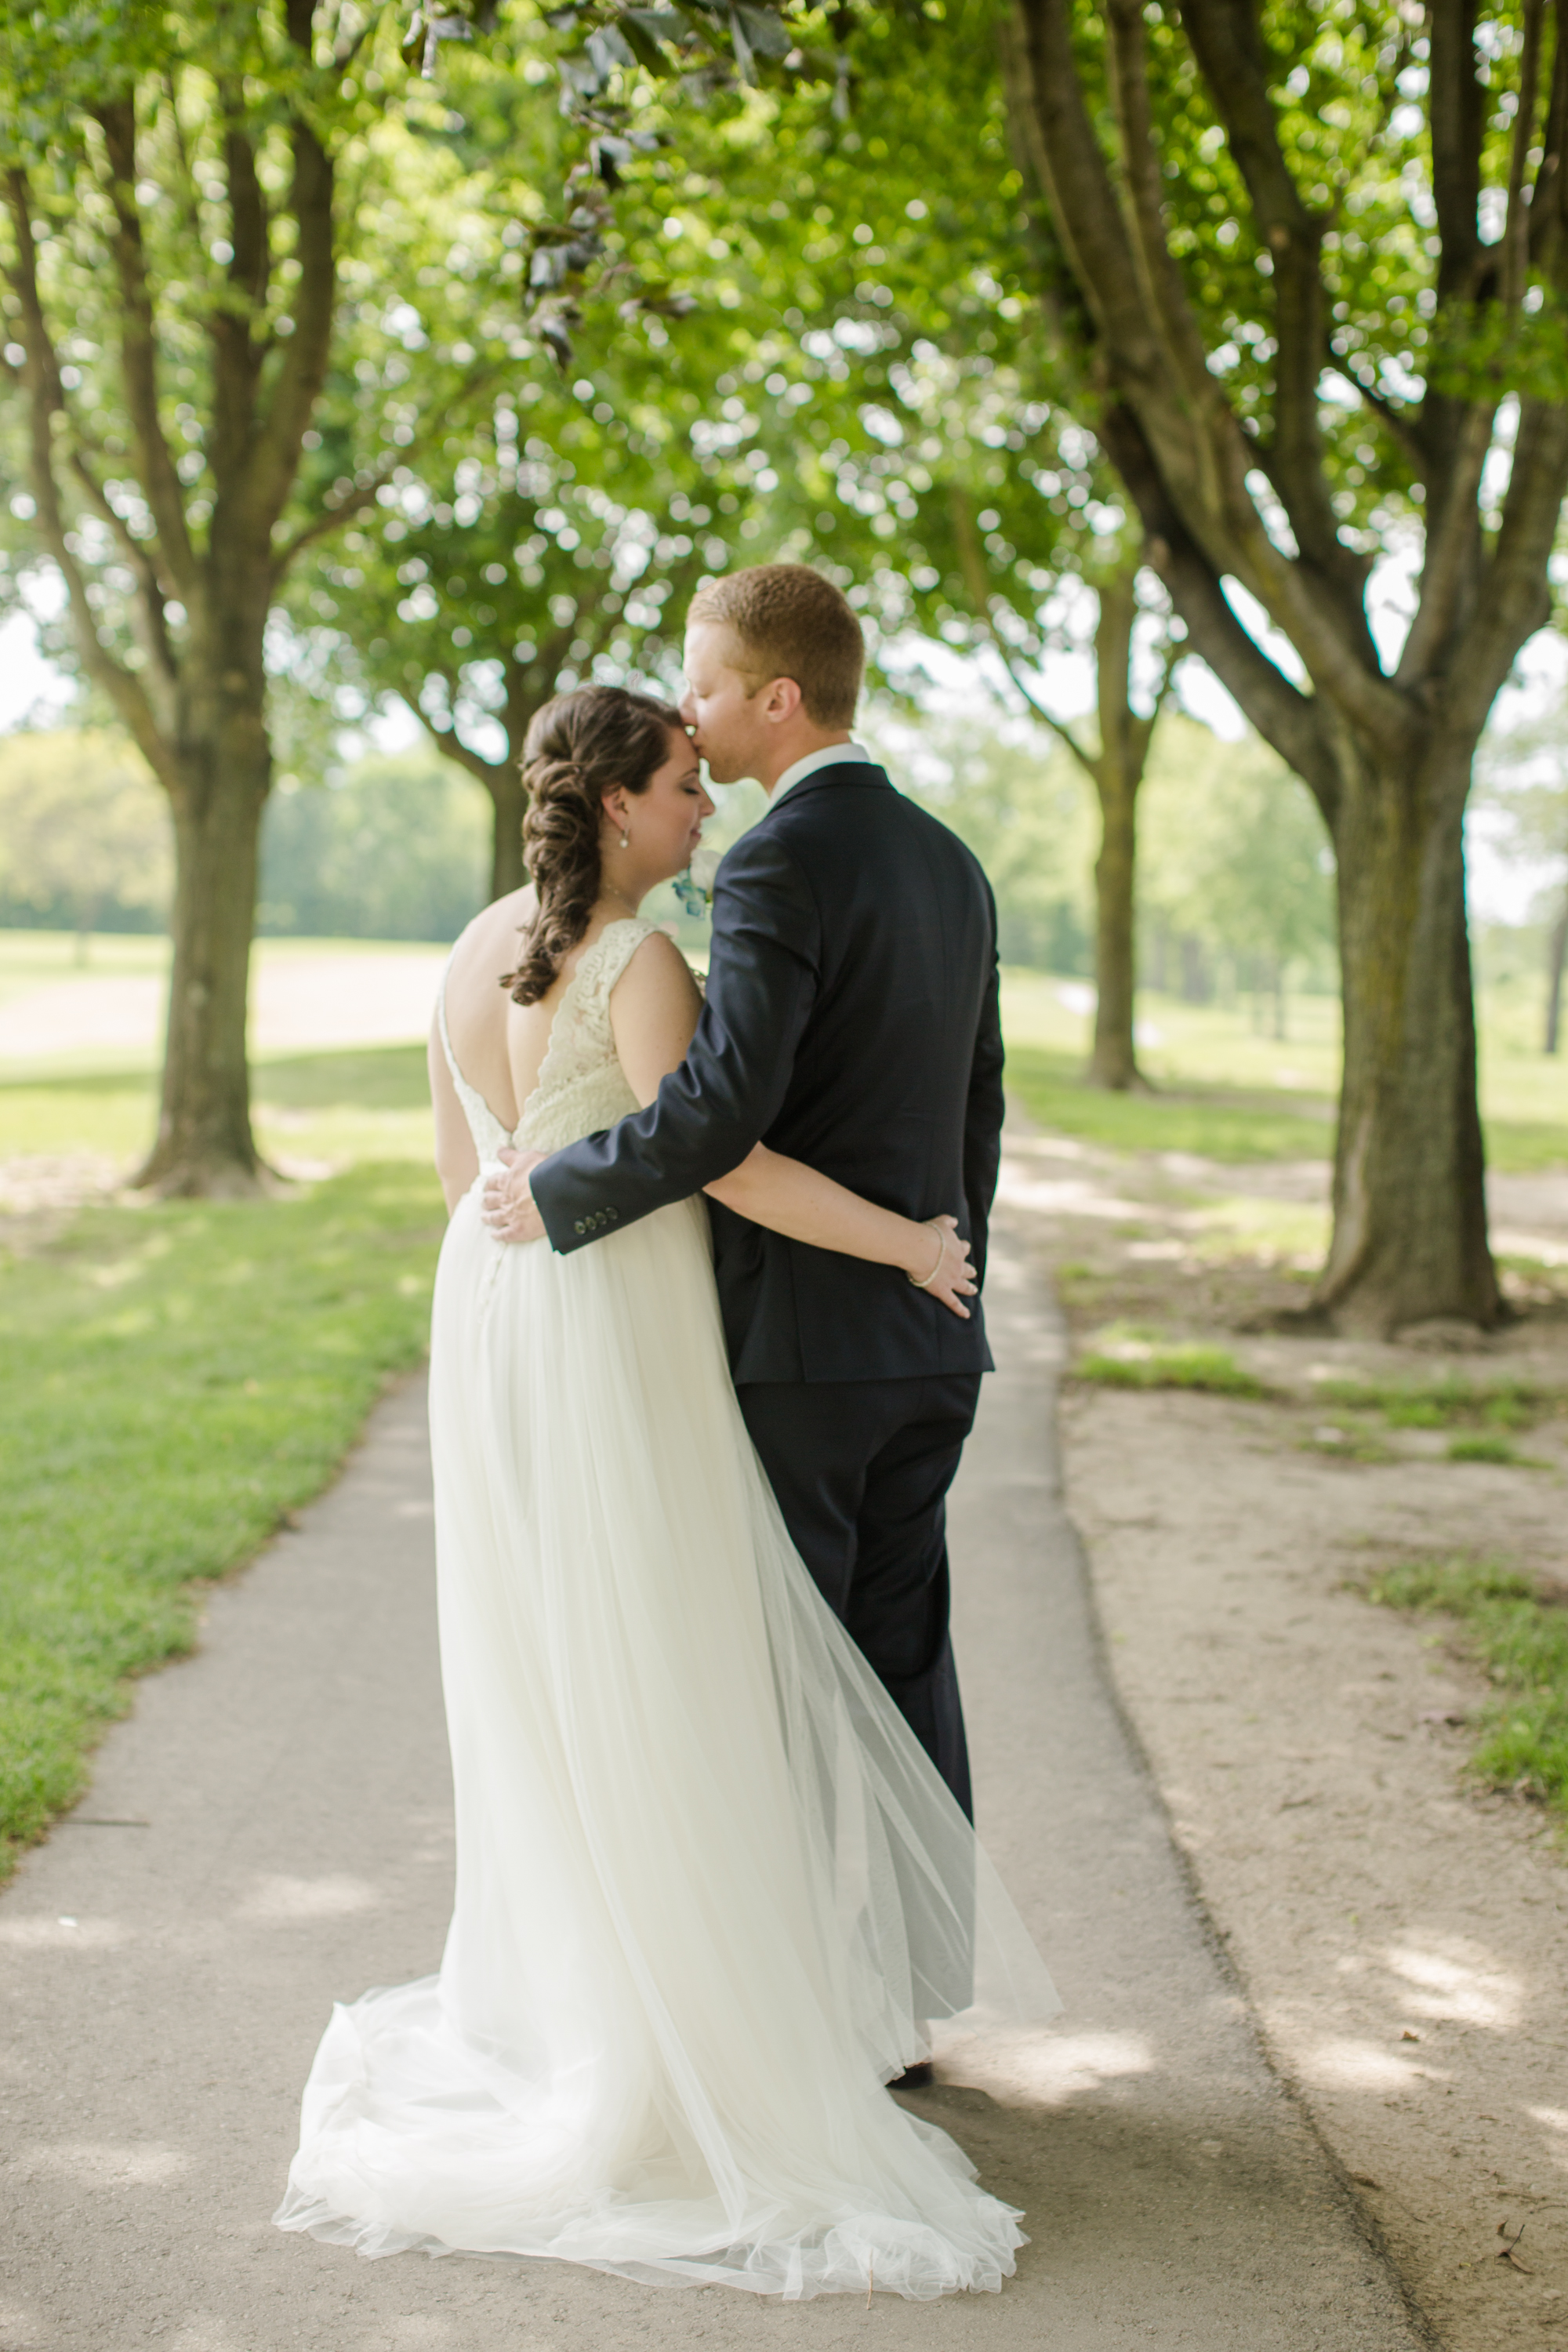 groom kissing bride on forehead during wedding photos in Rochester Michigan